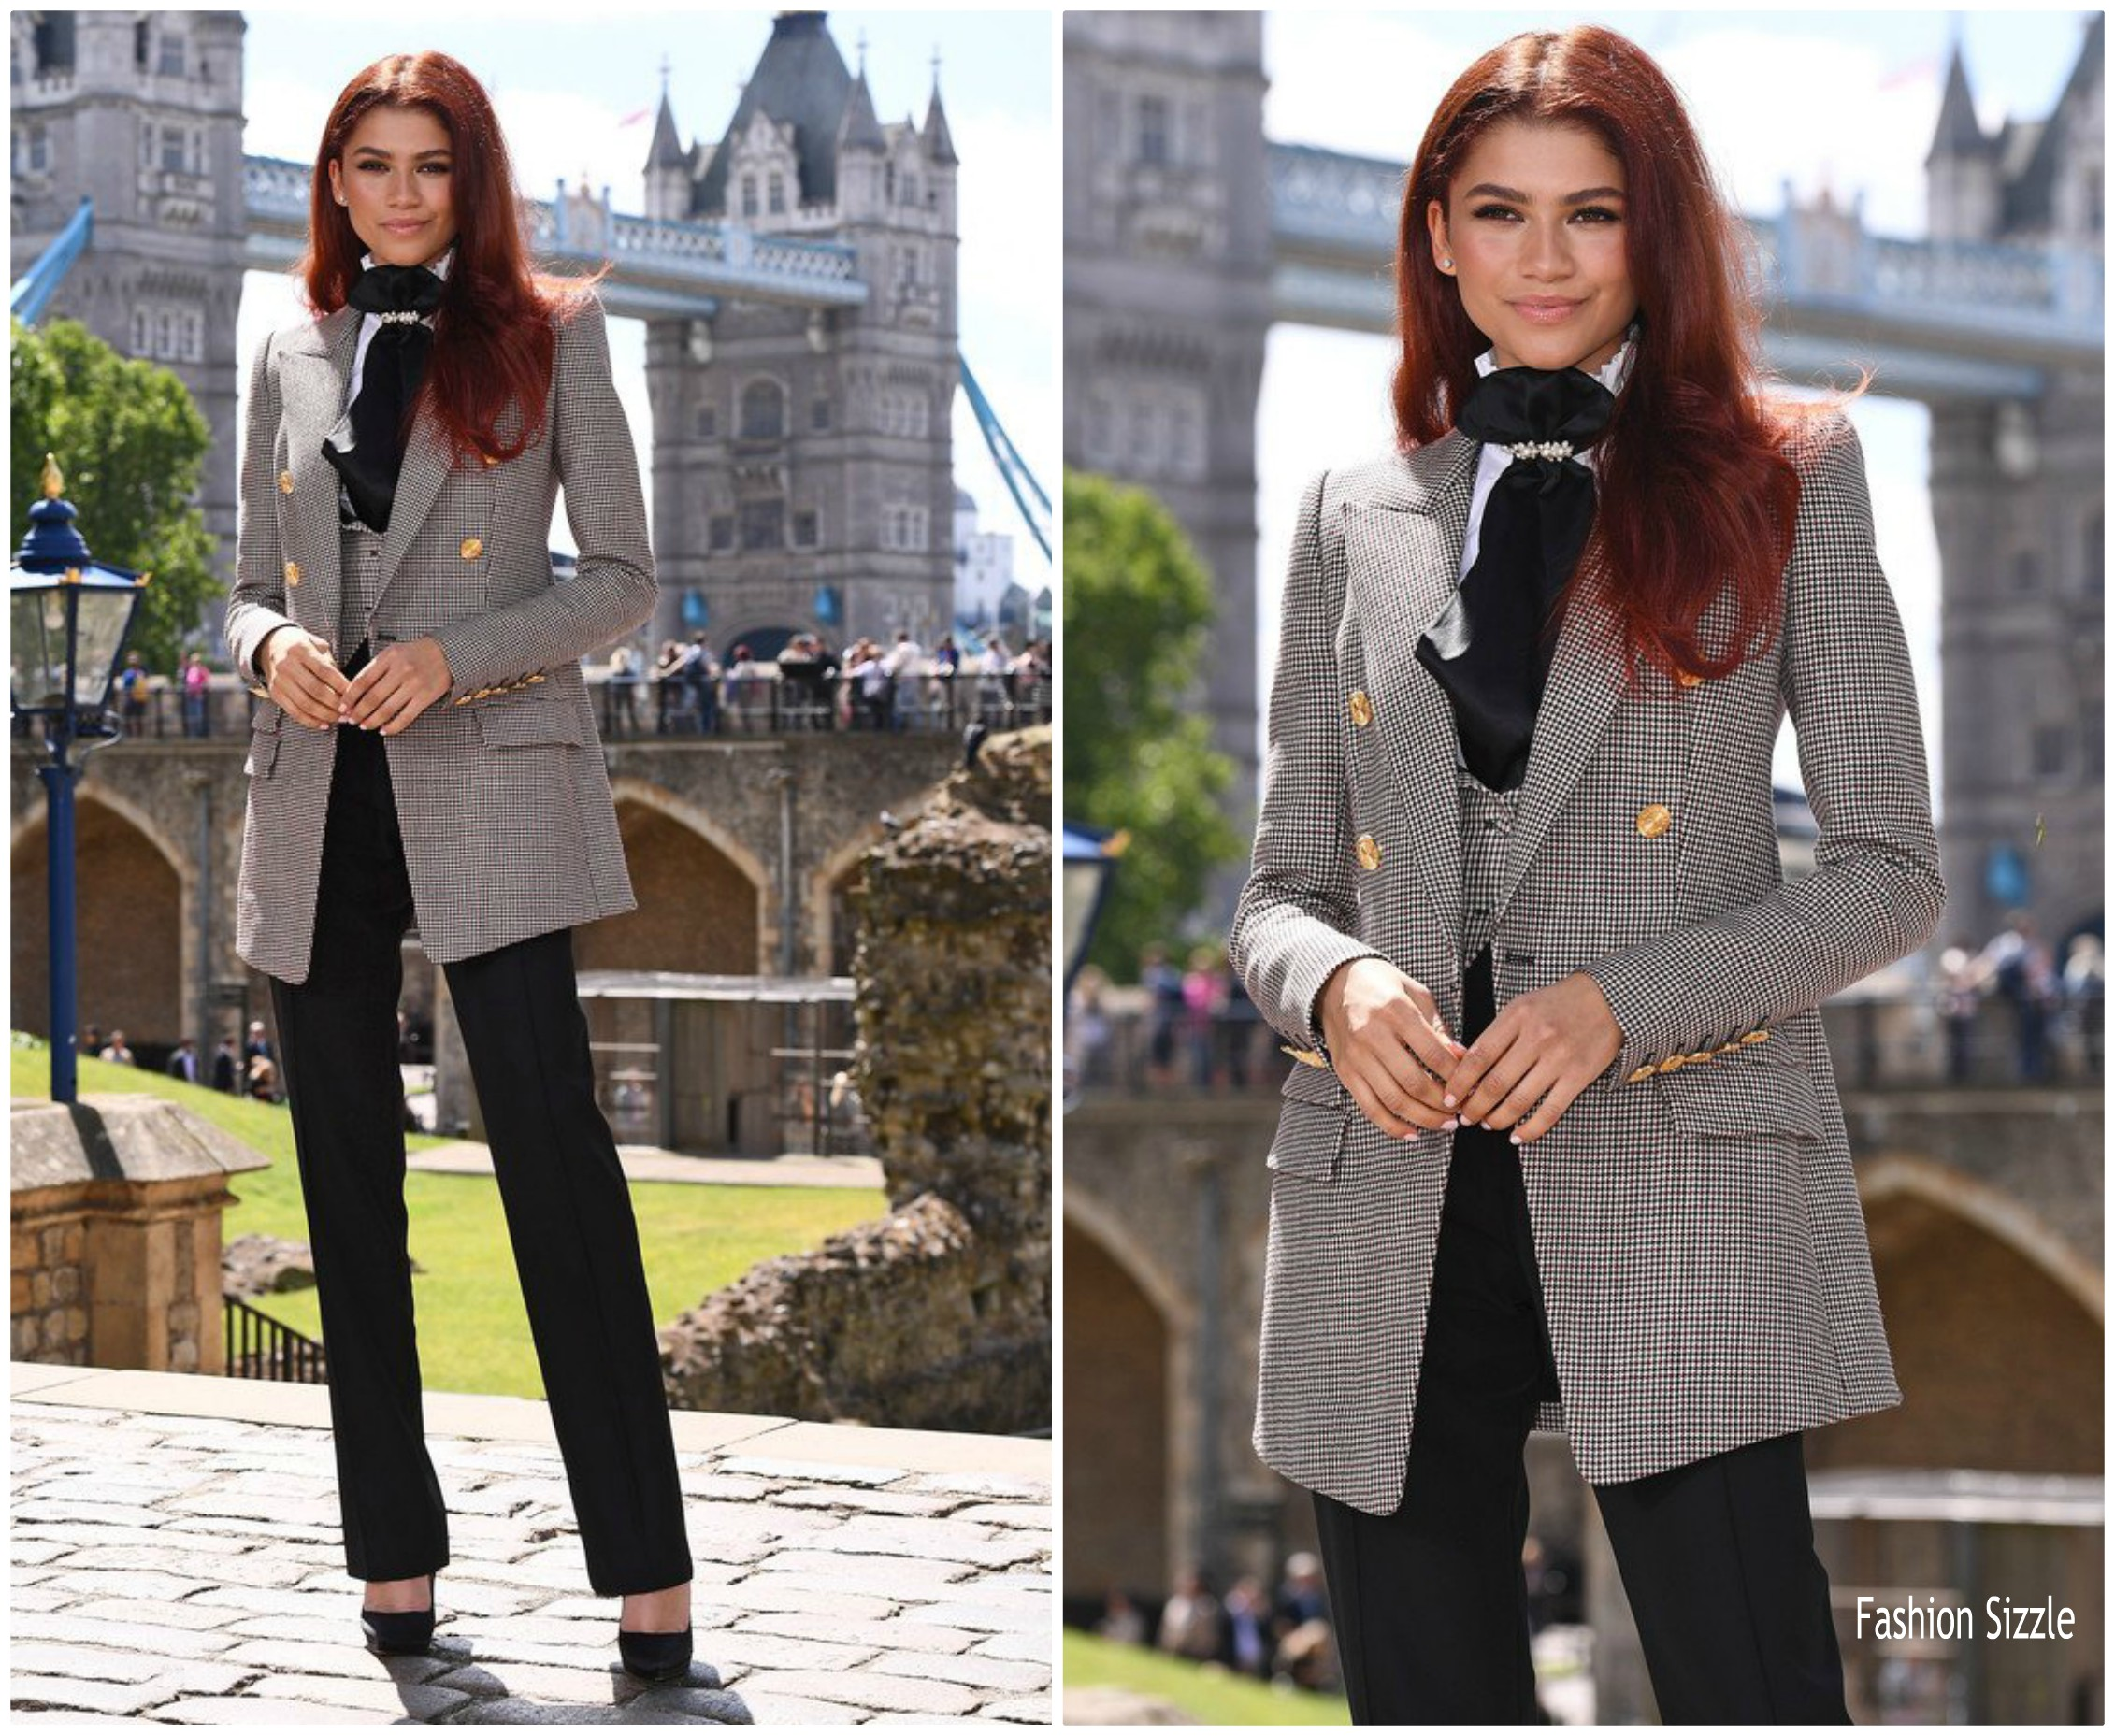 zendaya-coleman-in-alexandre-vauthier-spiderman-far-from-home-london-photocall